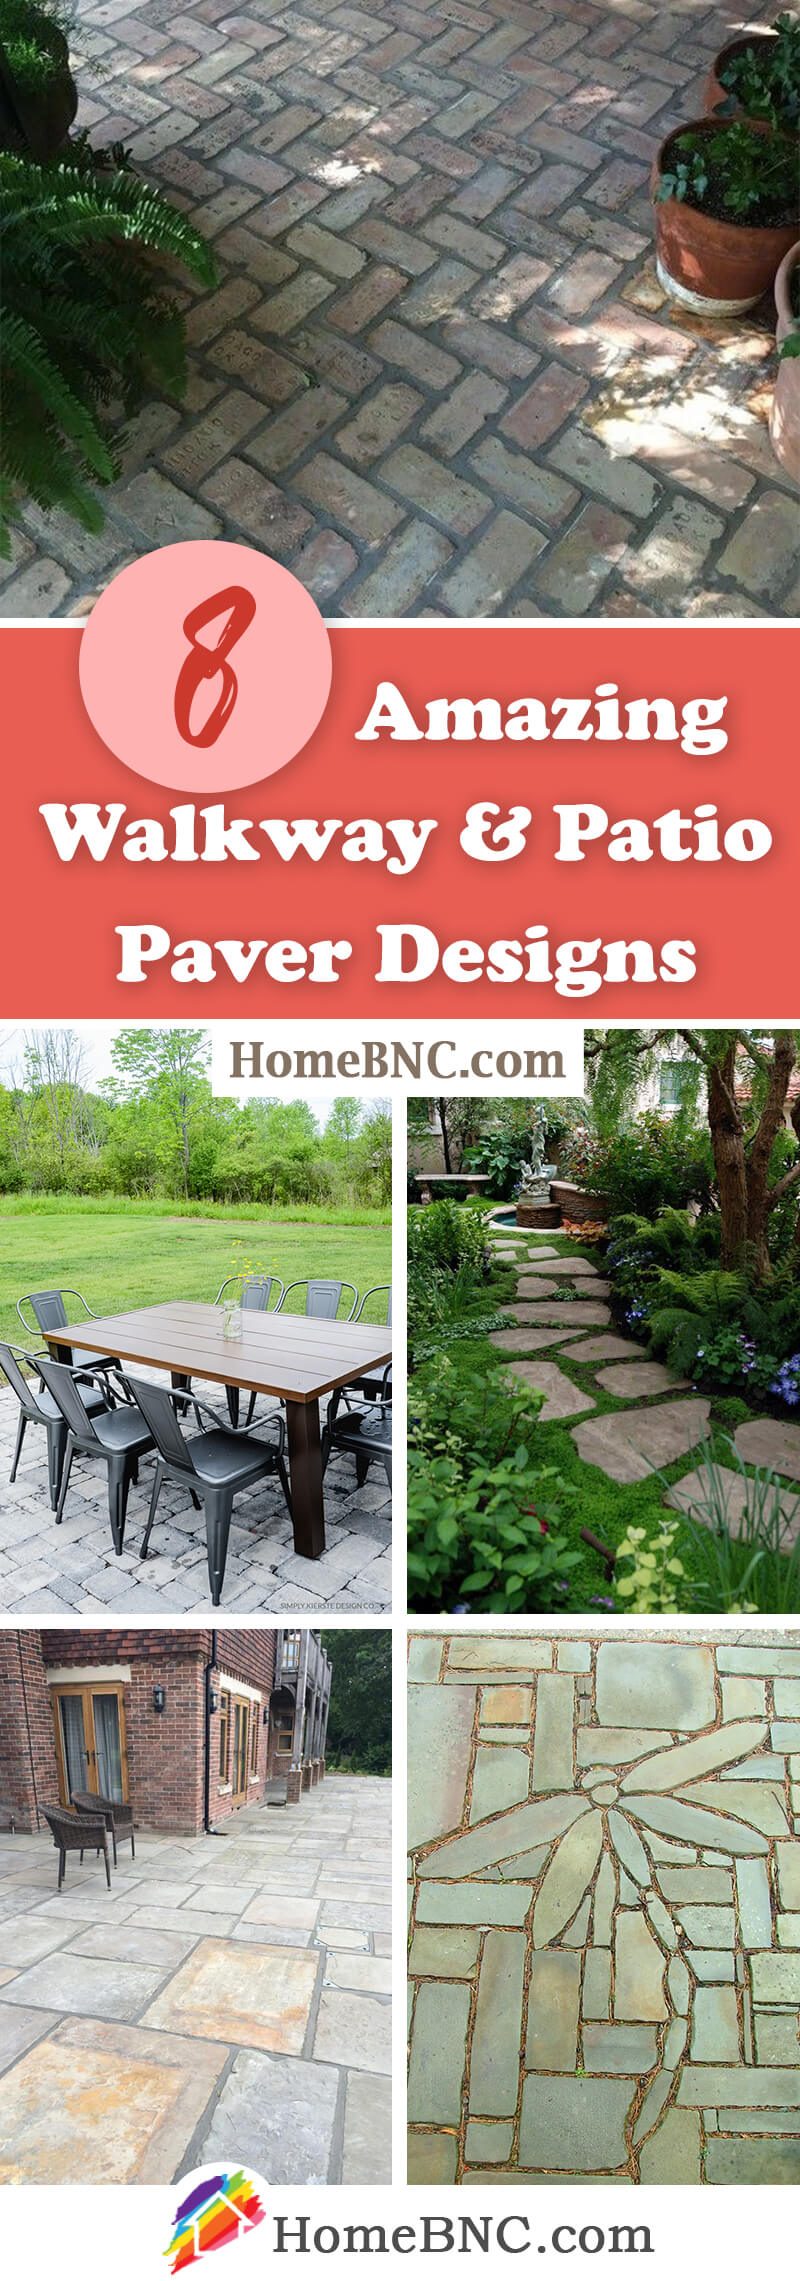 walkway and patio paver design ideas